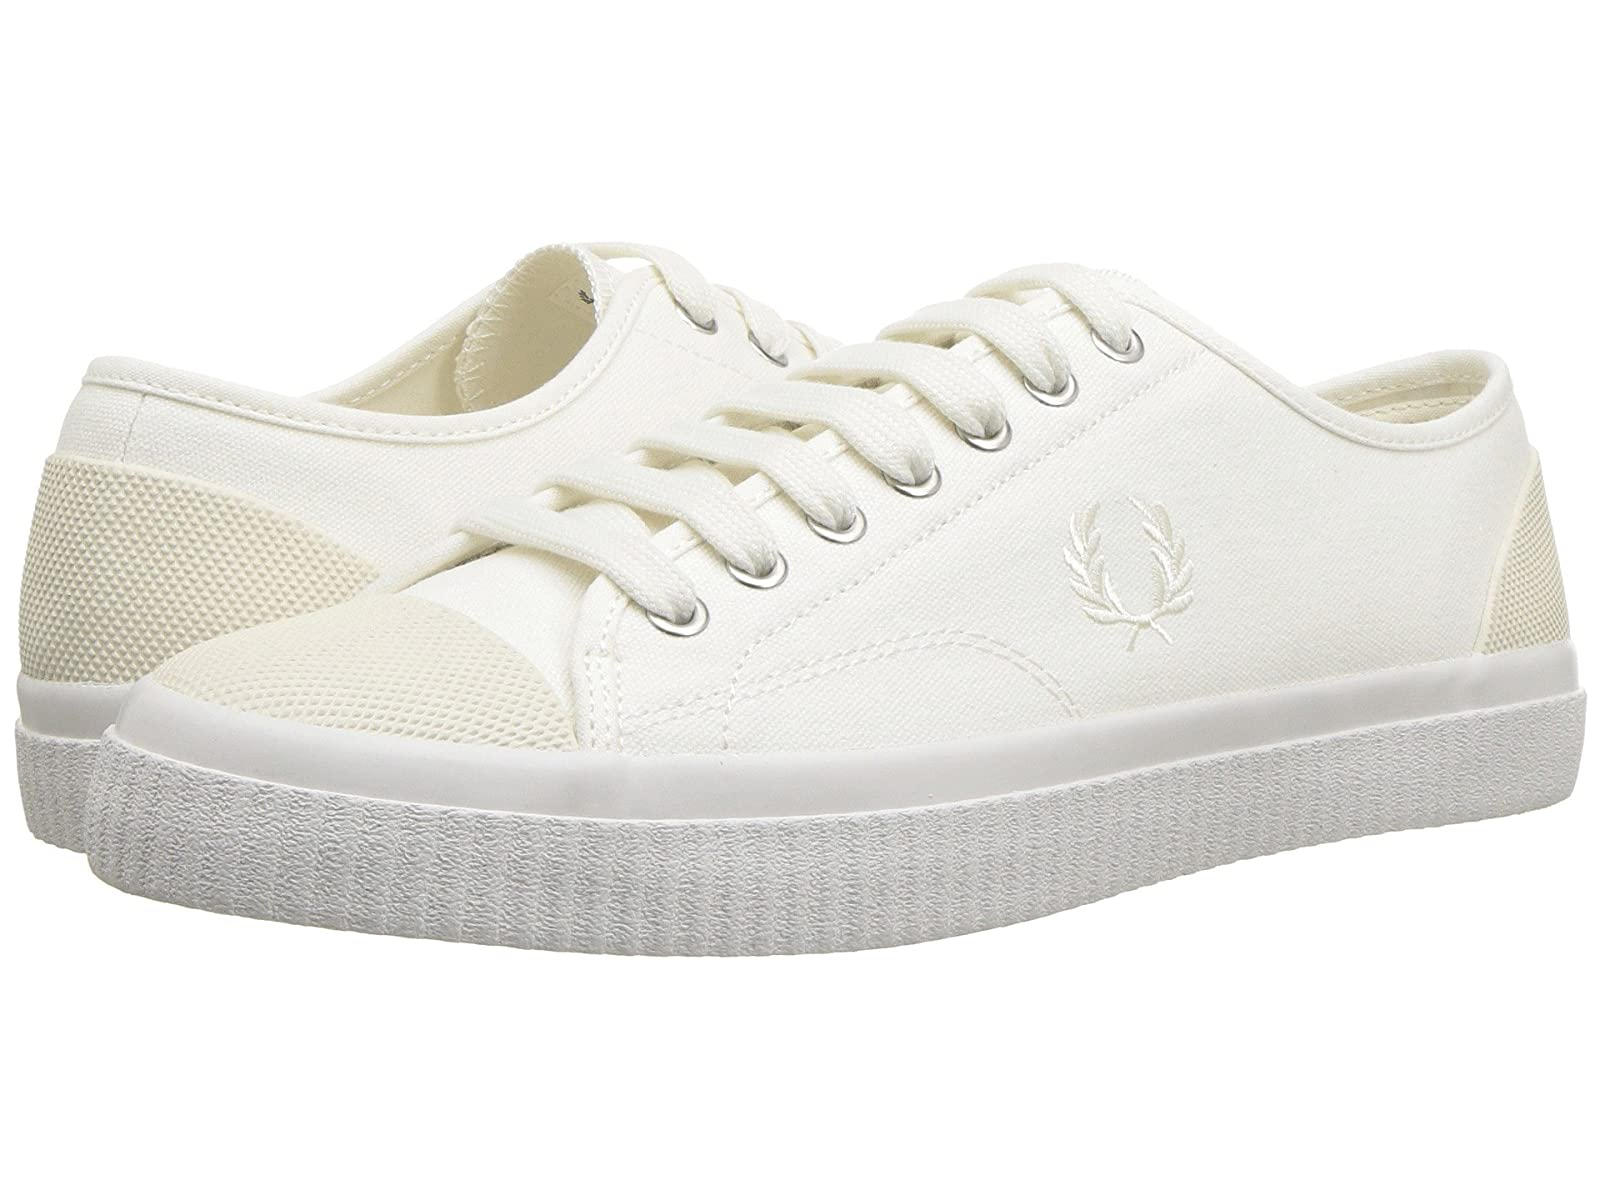 Fred Perry Hughes CanvasAtmospheric grades have affordable shoes